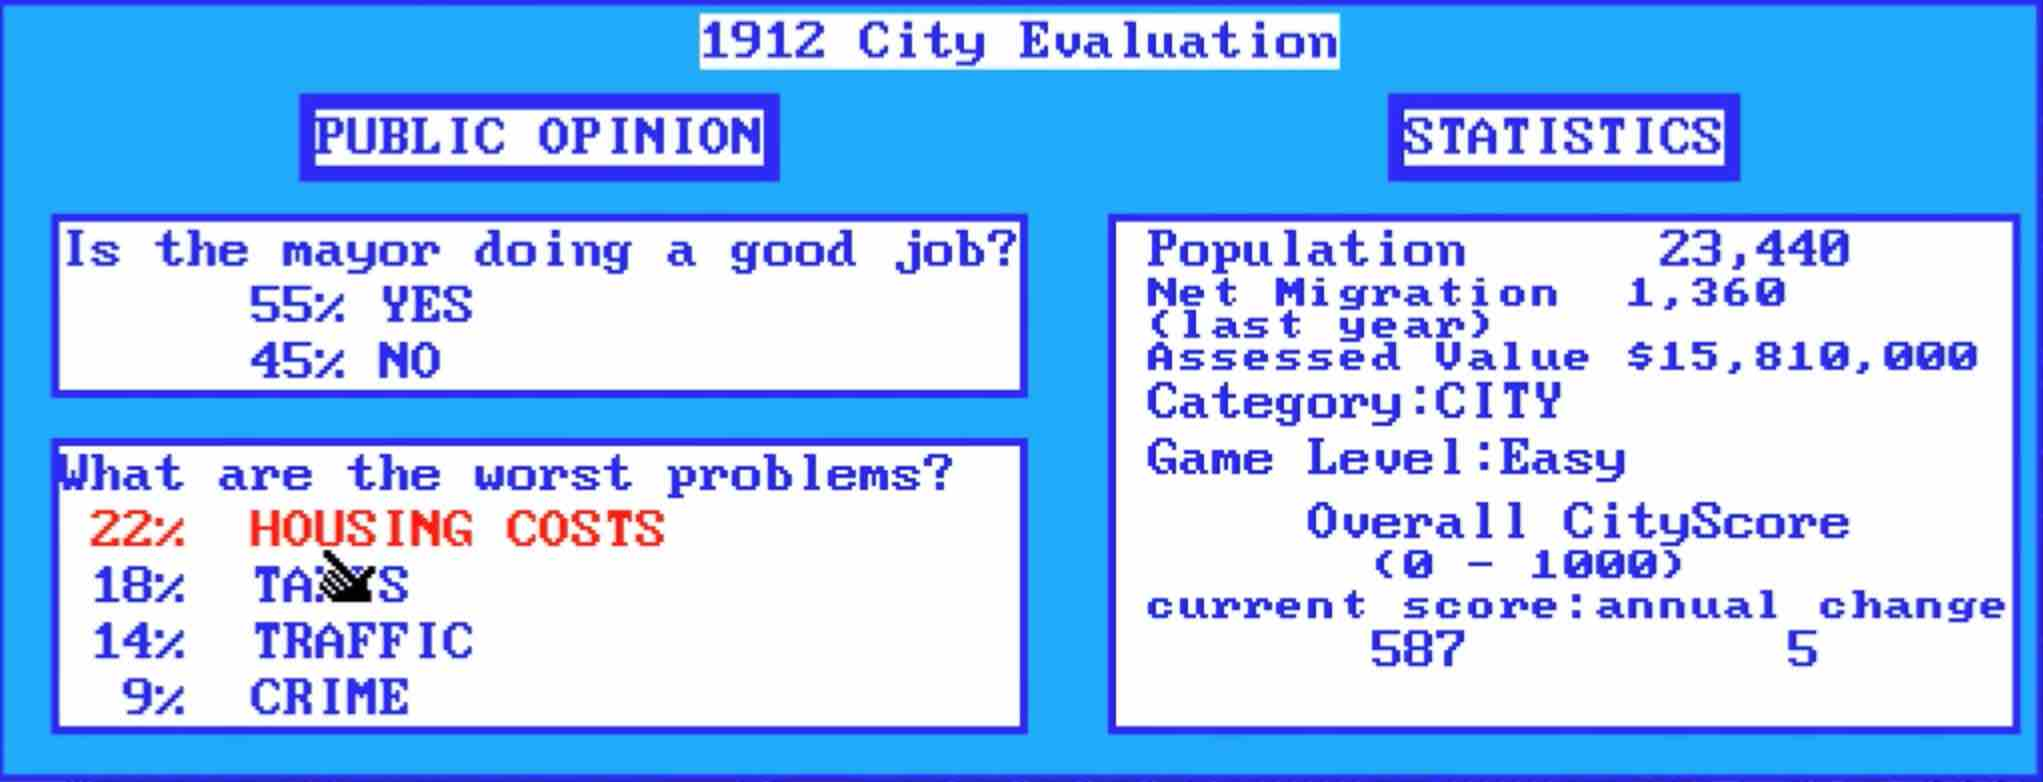 Do you think you'd be a good Sim mayor in your video game city? Teaching you data analysis is one way that video games are good for you.